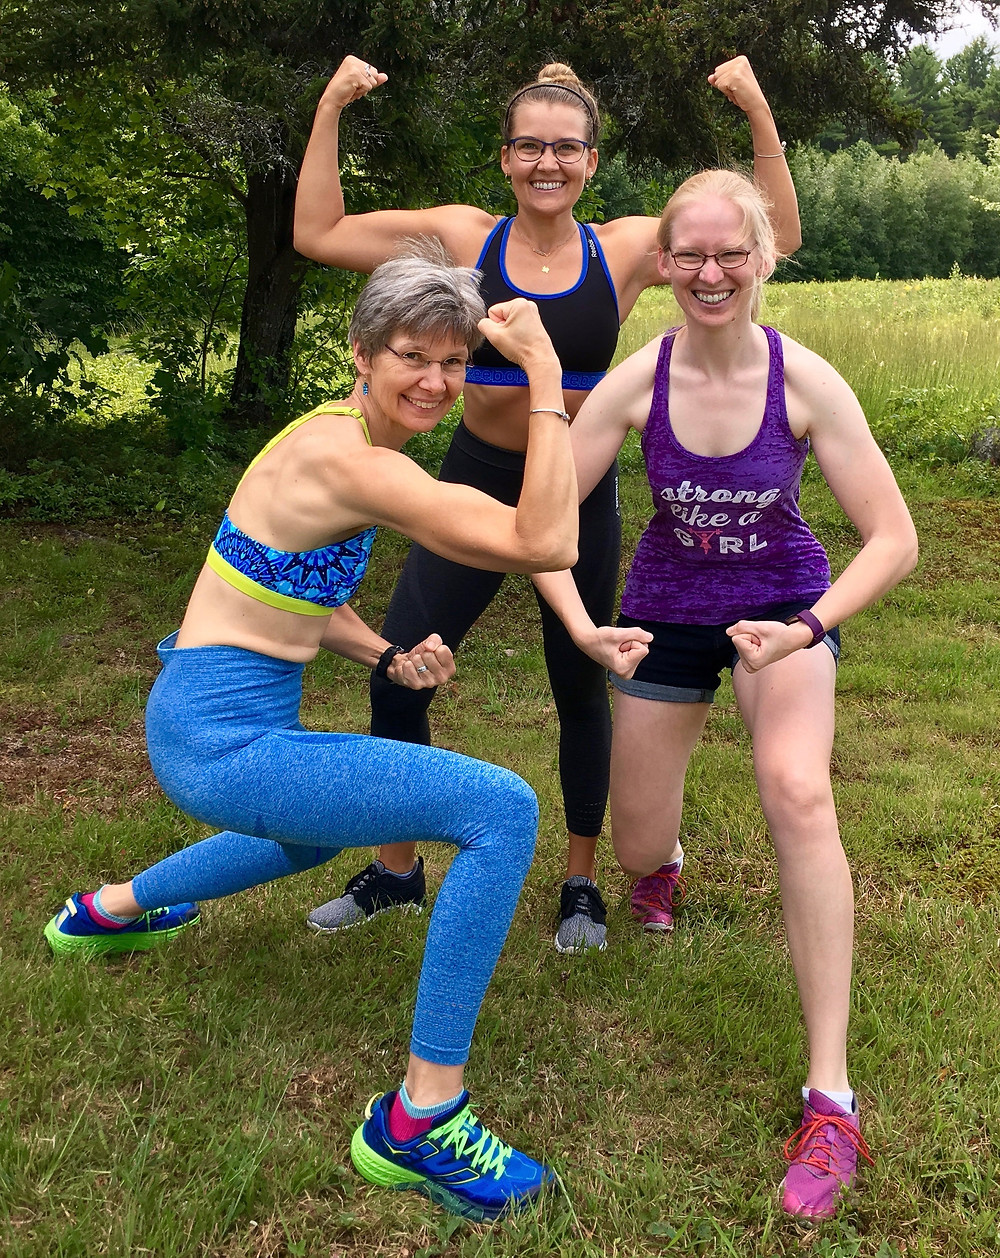 Dotty, Helen, and Ruth showing off our muscles, 2017